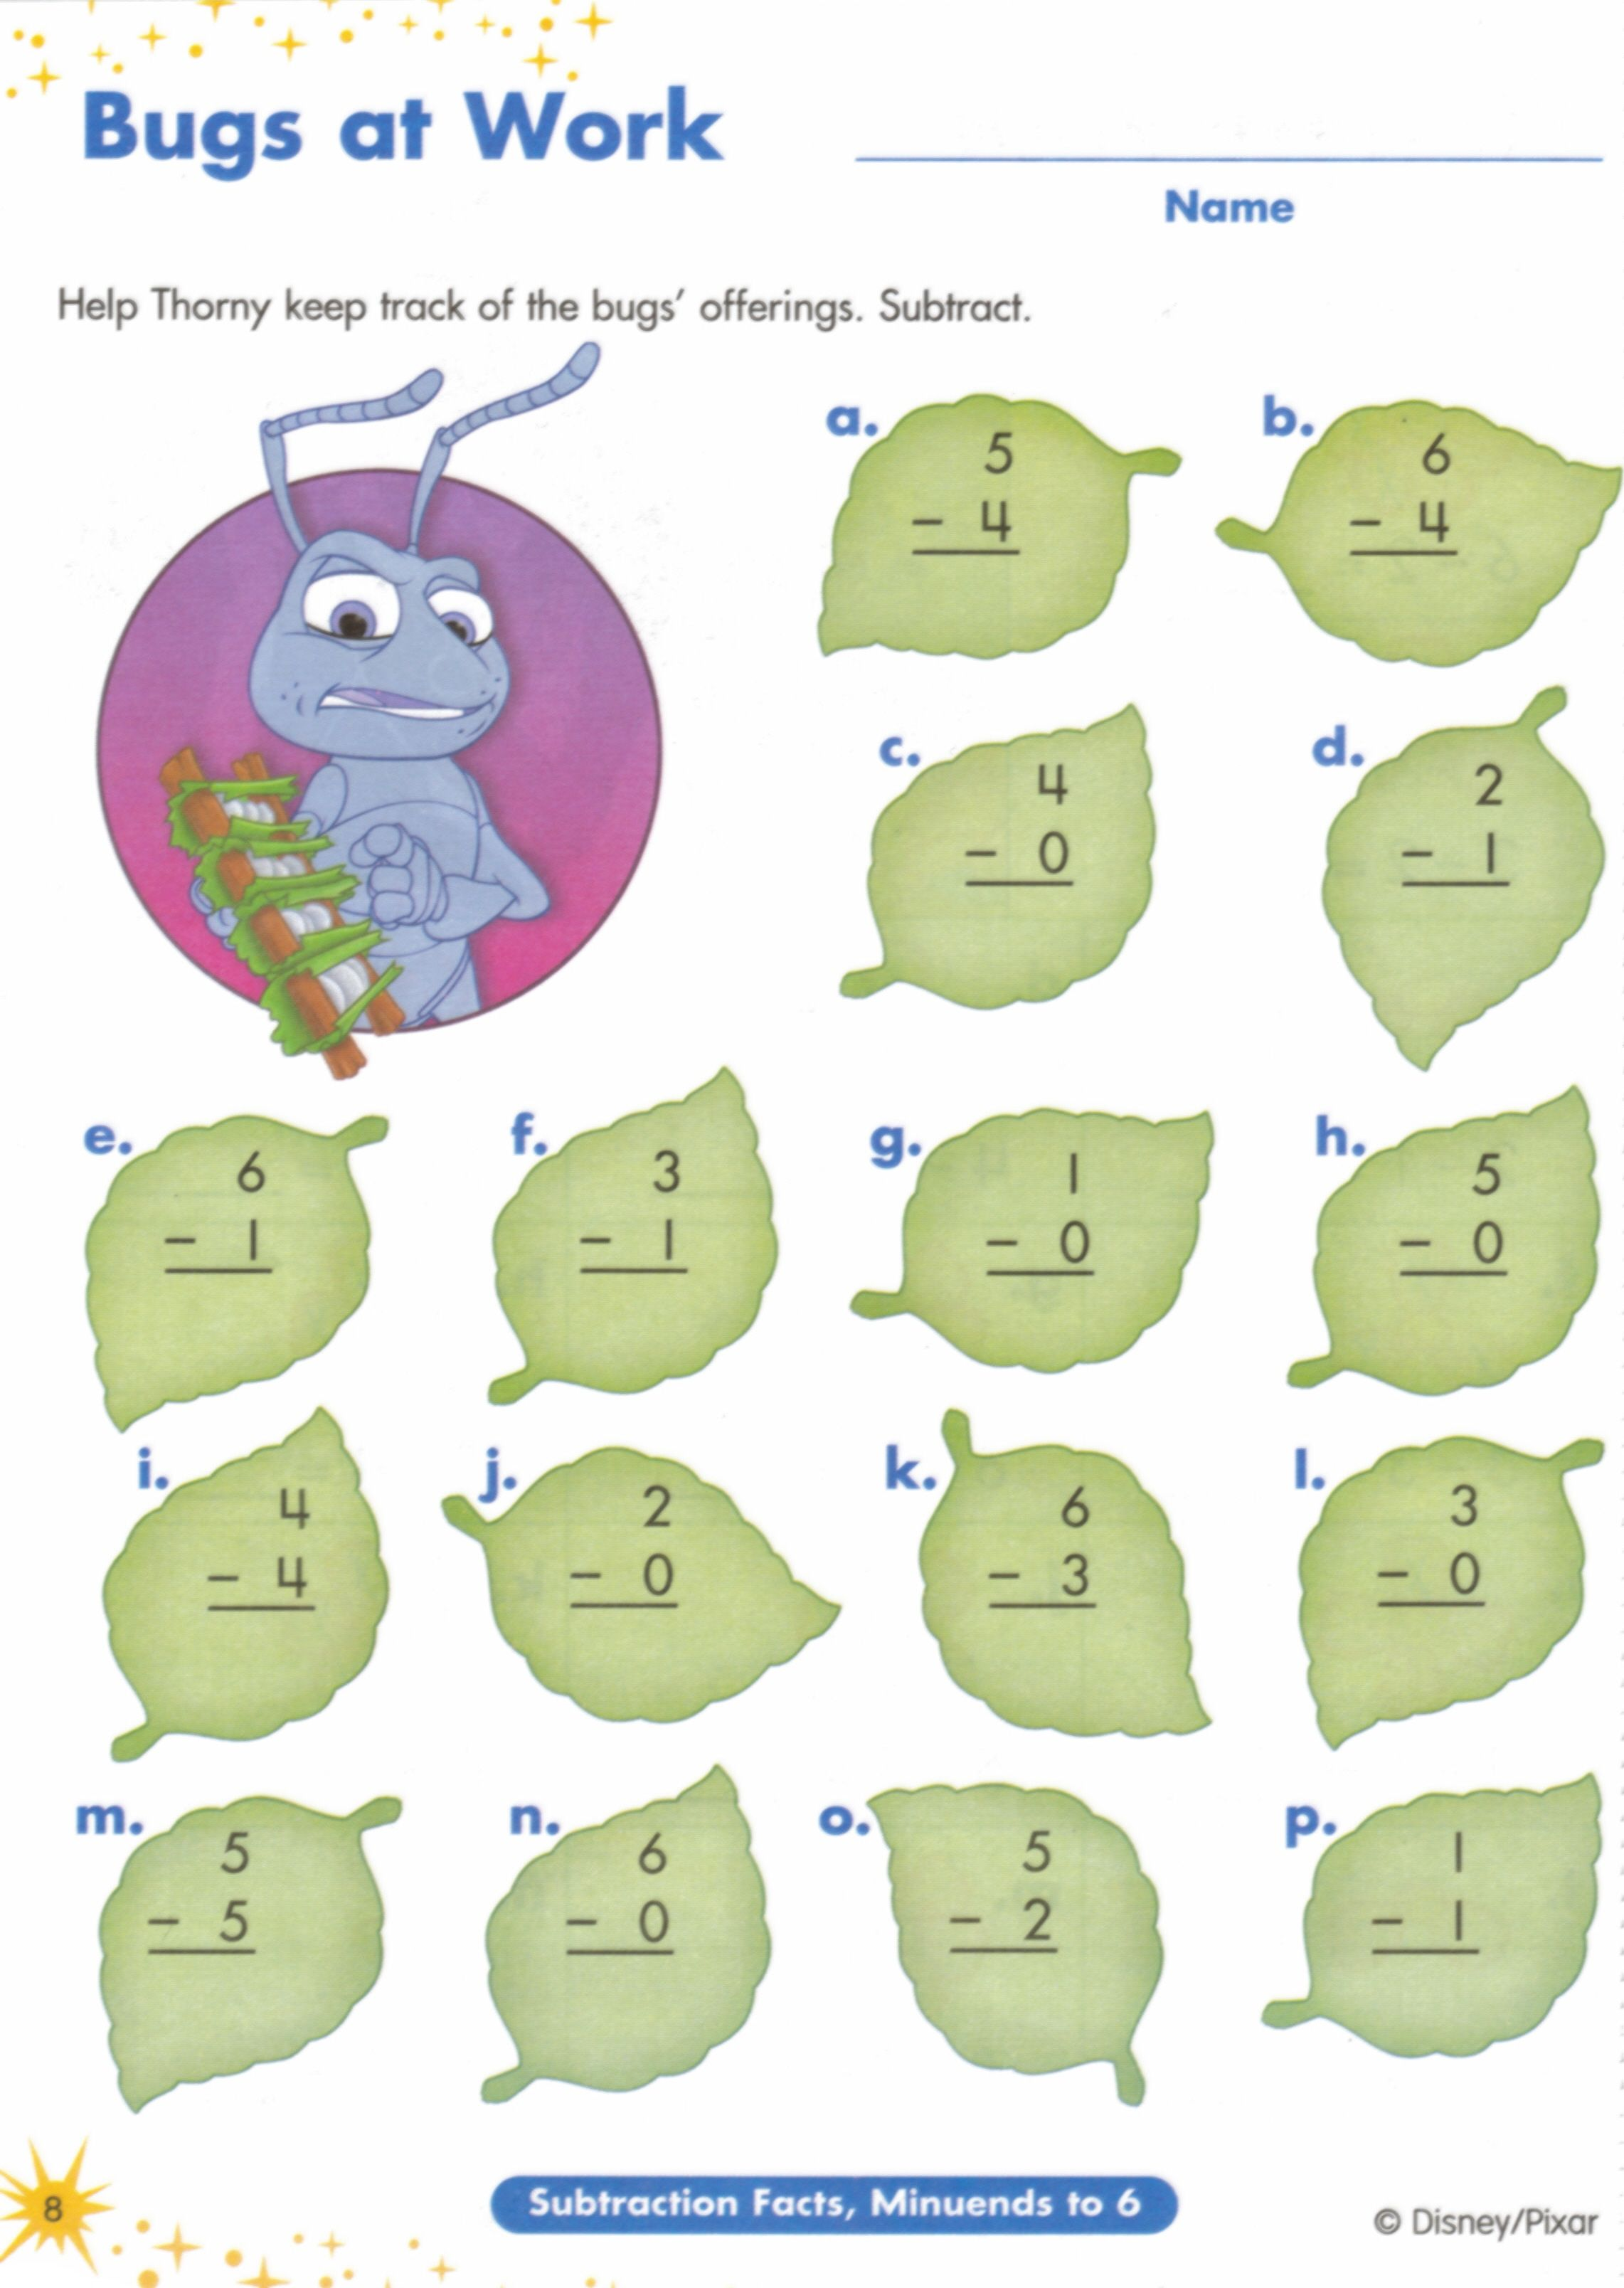 Proatmealus  Prepossessing  Images About Worksheets On Pinterest  Fun Facts For Kids  With Fetching  Images About Worksheets On Pinterest  Fun Facts For Kids Earth Day Worksheets And Jungles With Agreeable Measuring In Centimeters Worksheet Also Analyze A Poem Worksheet In Addition Area Of Squares And Rectangles Worksheets And Glencoe Life Science Worksheets As Well As Shapes Worksheets For Toddlers Additionally Making Predictions Worksheets Rd Grade From Pinterestcom With Proatmealus  Fetching  Images About Worksheets On Pinterest  Fun Facts For Kids  With Agreeable  Images About Worksheets On Pinterest  Fun Facts For Kids Earth Day Worksheets And Jungles And Prepossessing Measuring In Centimeters Worksheet Also Analyze A Poem Worksheet In Addition Area Of Squares And Rectangles Worksheets From Pinterestcom